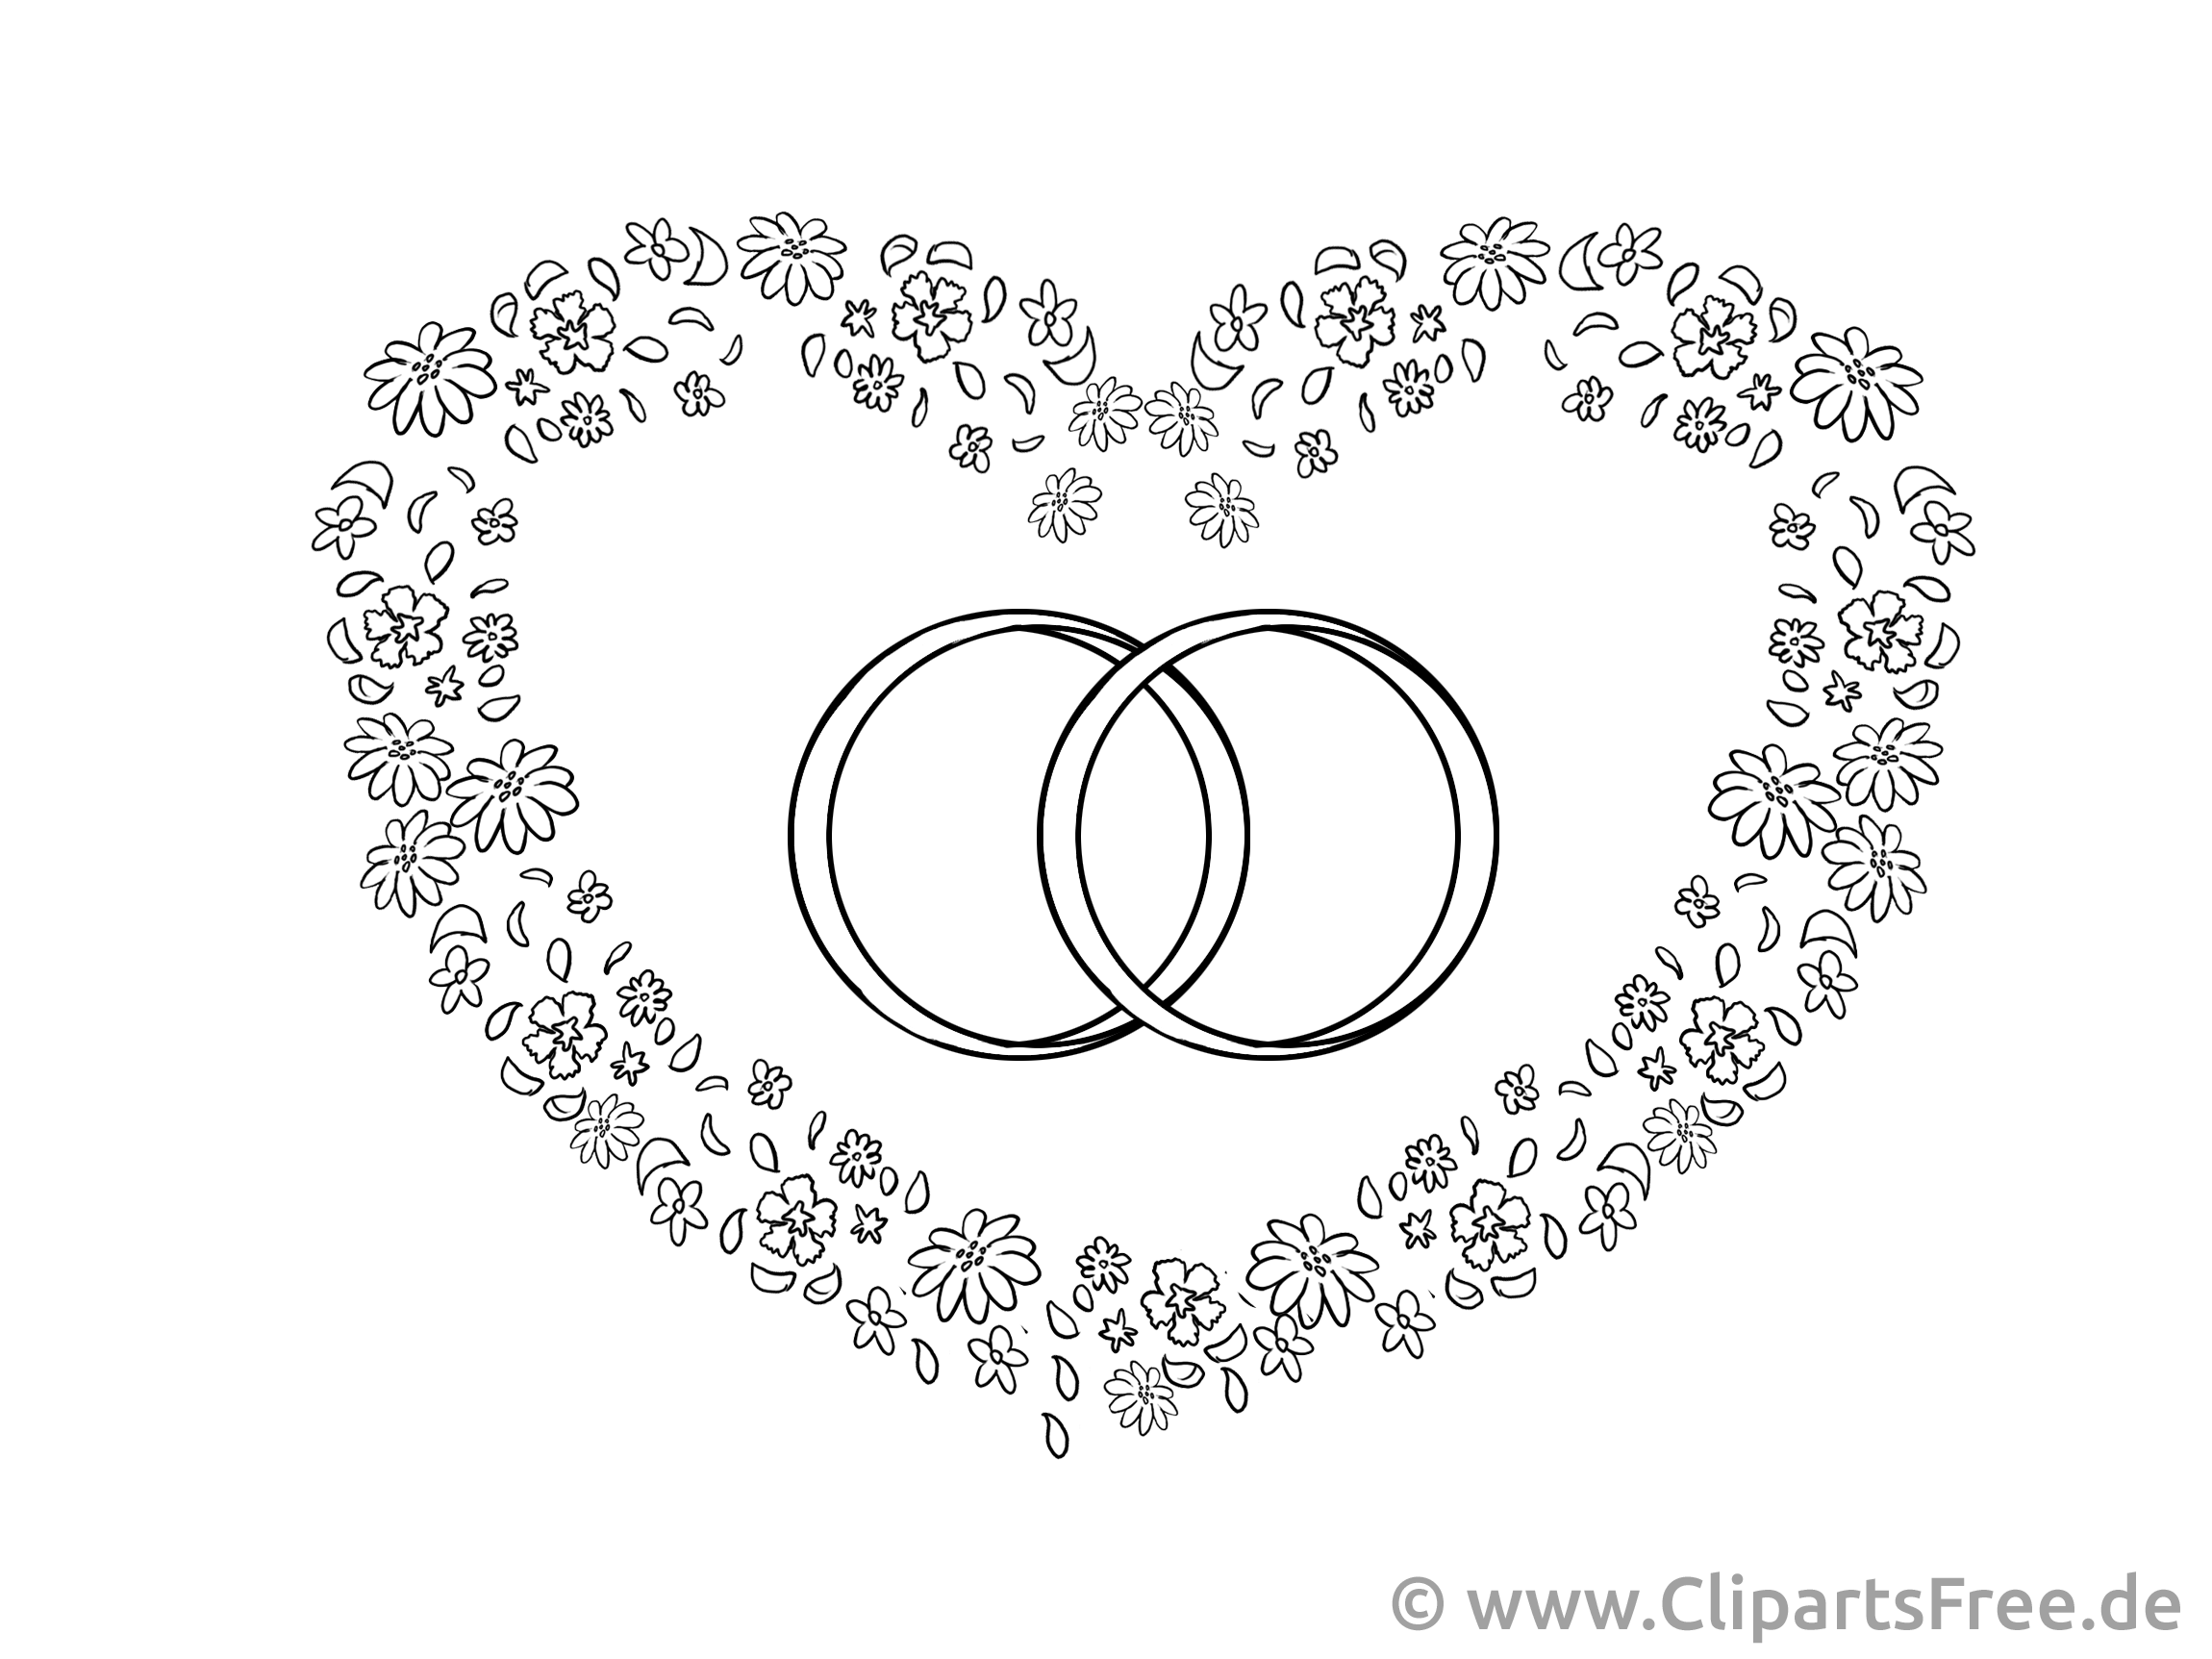 Heart and wedding rings drawing, clipart, picture for free